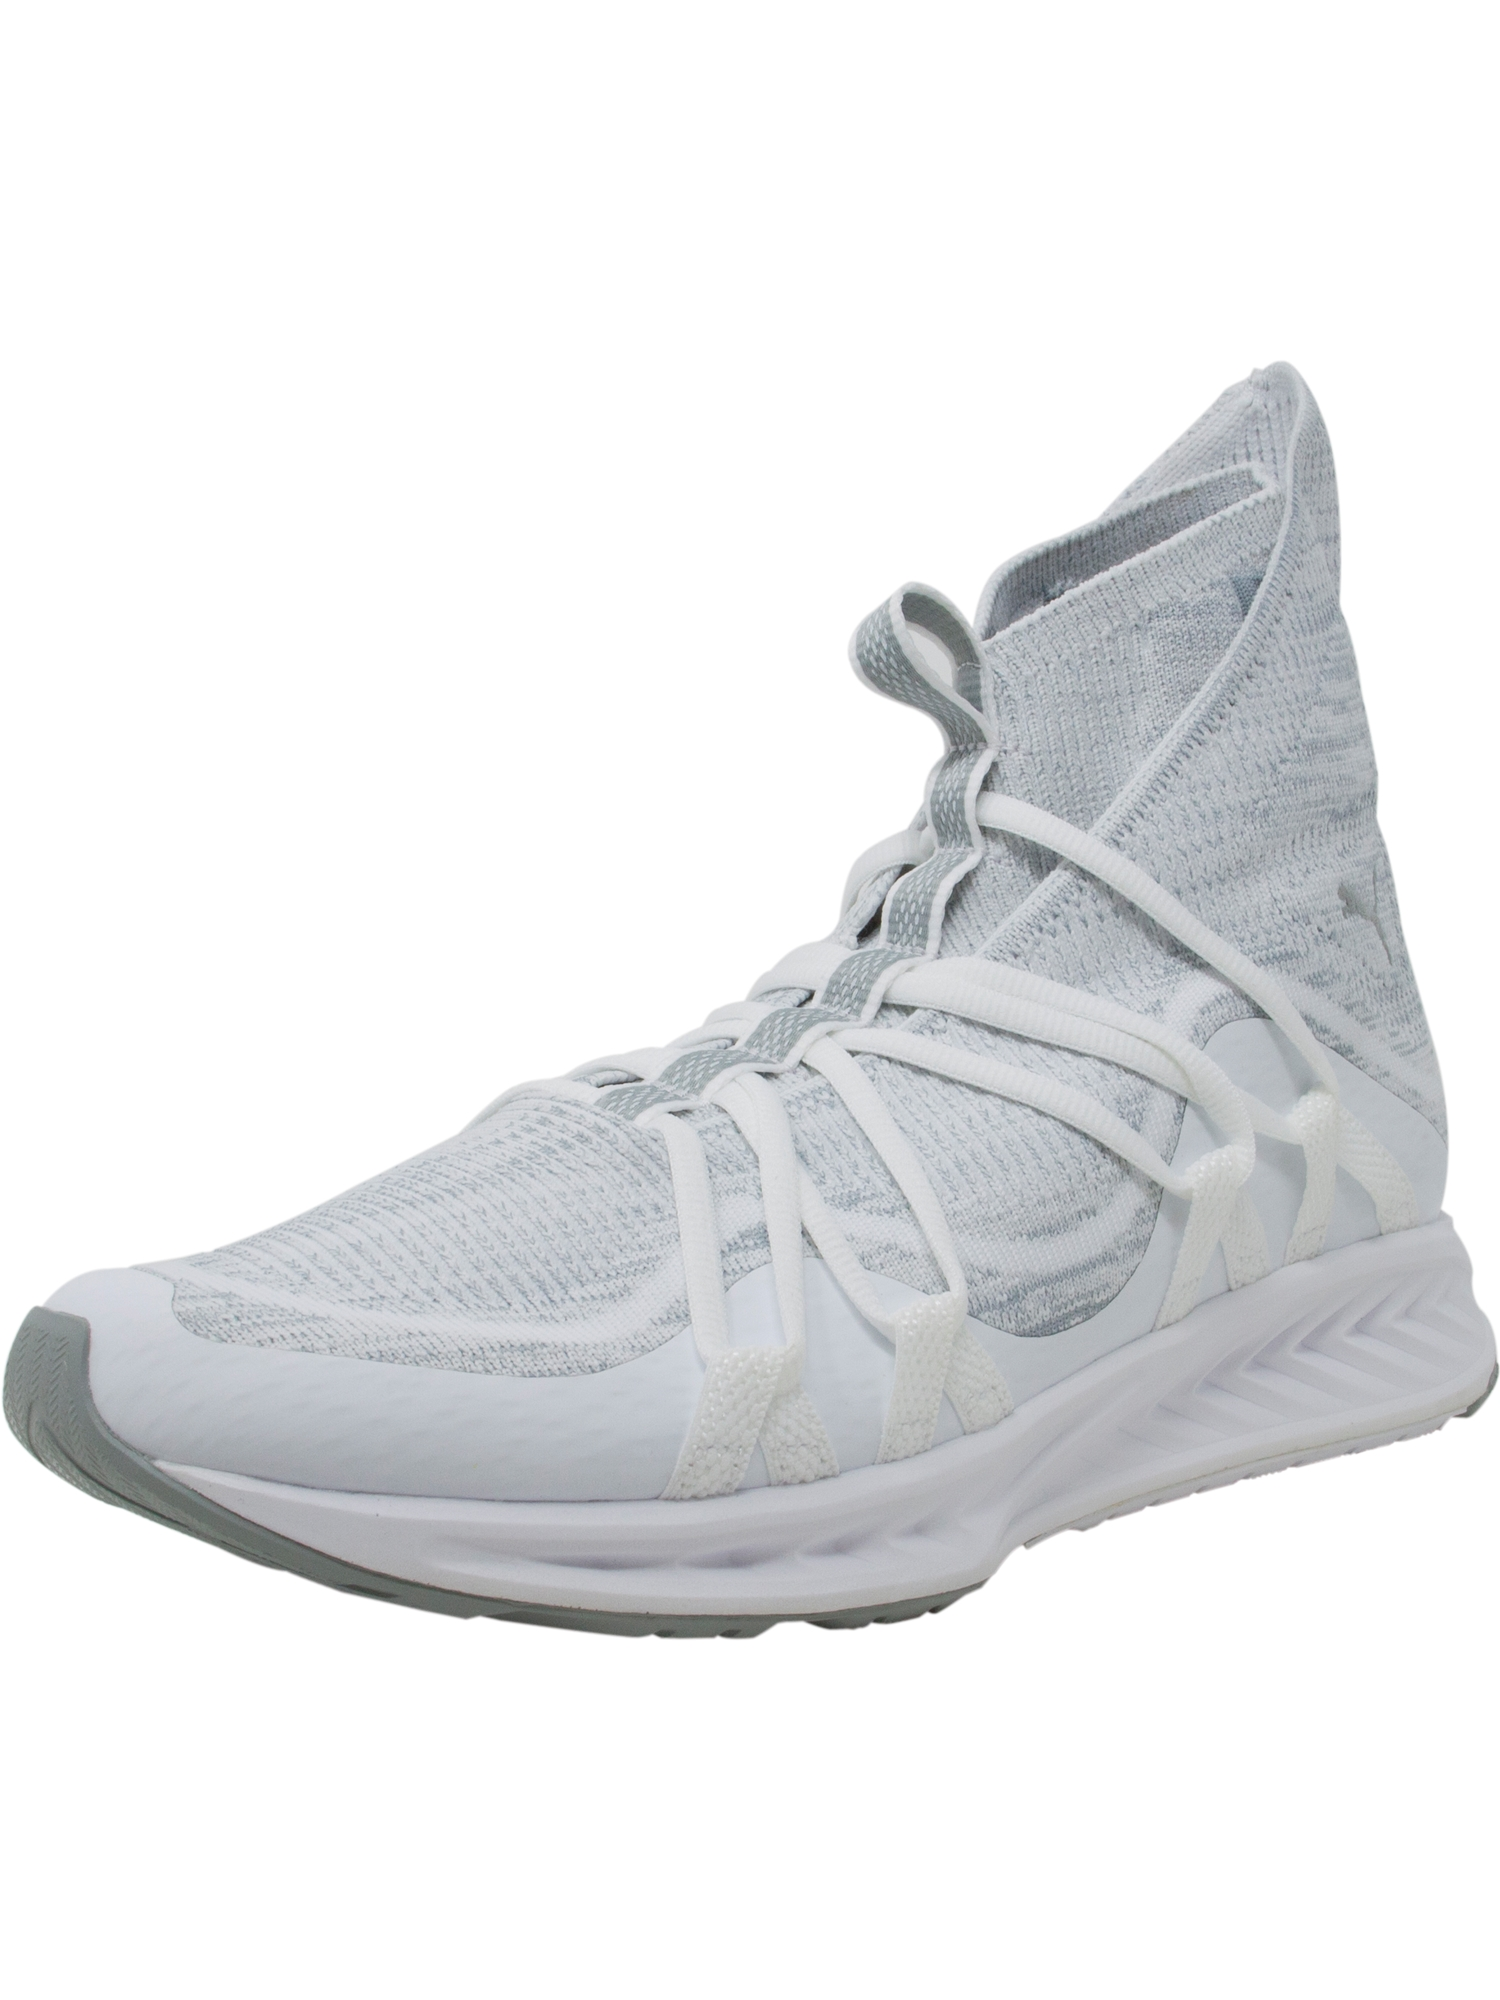 super popular 40953 16350 Puma Men's Ignite Evoknit Fold White / Quarry Mid-Top Training Shoes - 12M